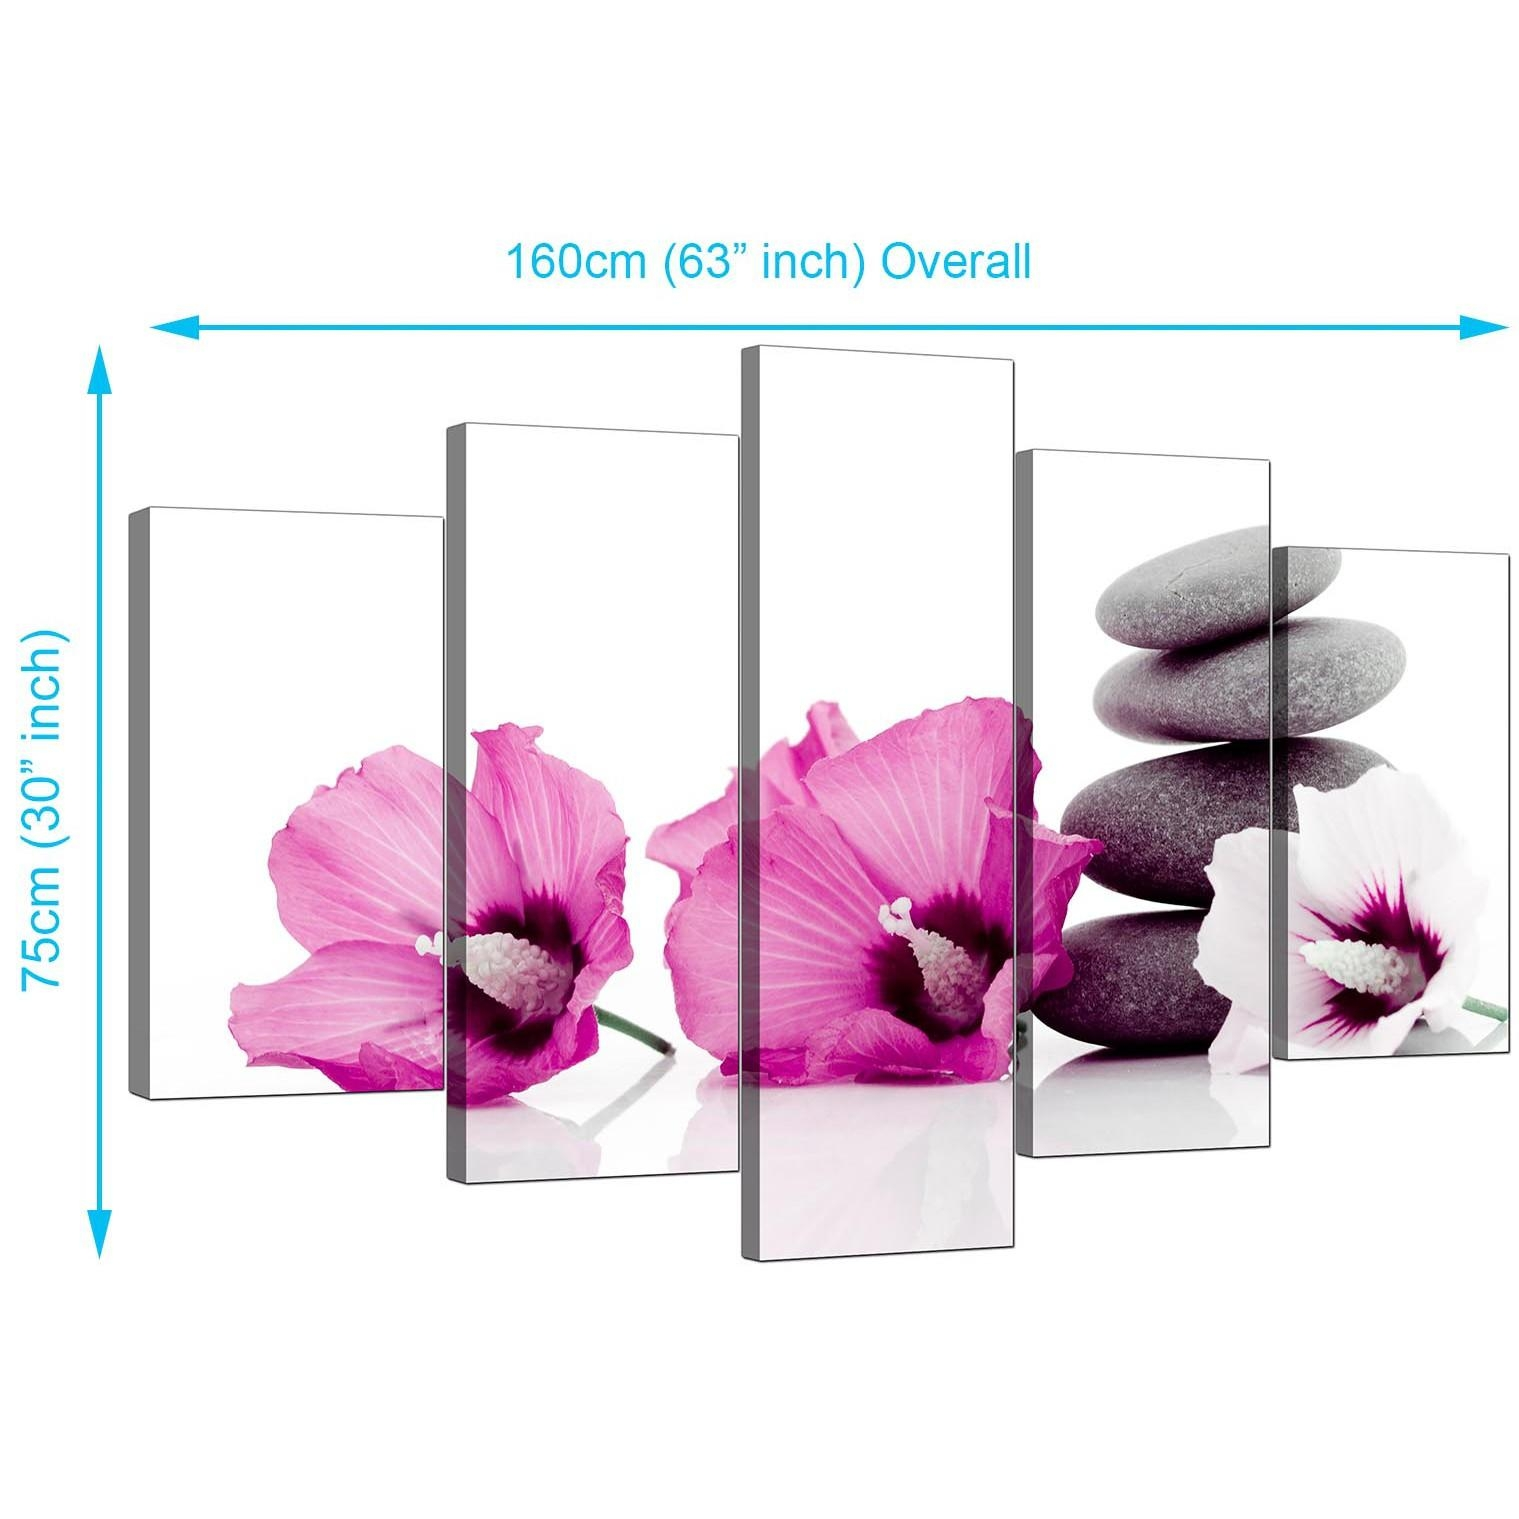 Extra Large Flowers Canvas Prints Uk 5 Panel In Pink In Plum Coloured Wall Art (View 16 of 20)